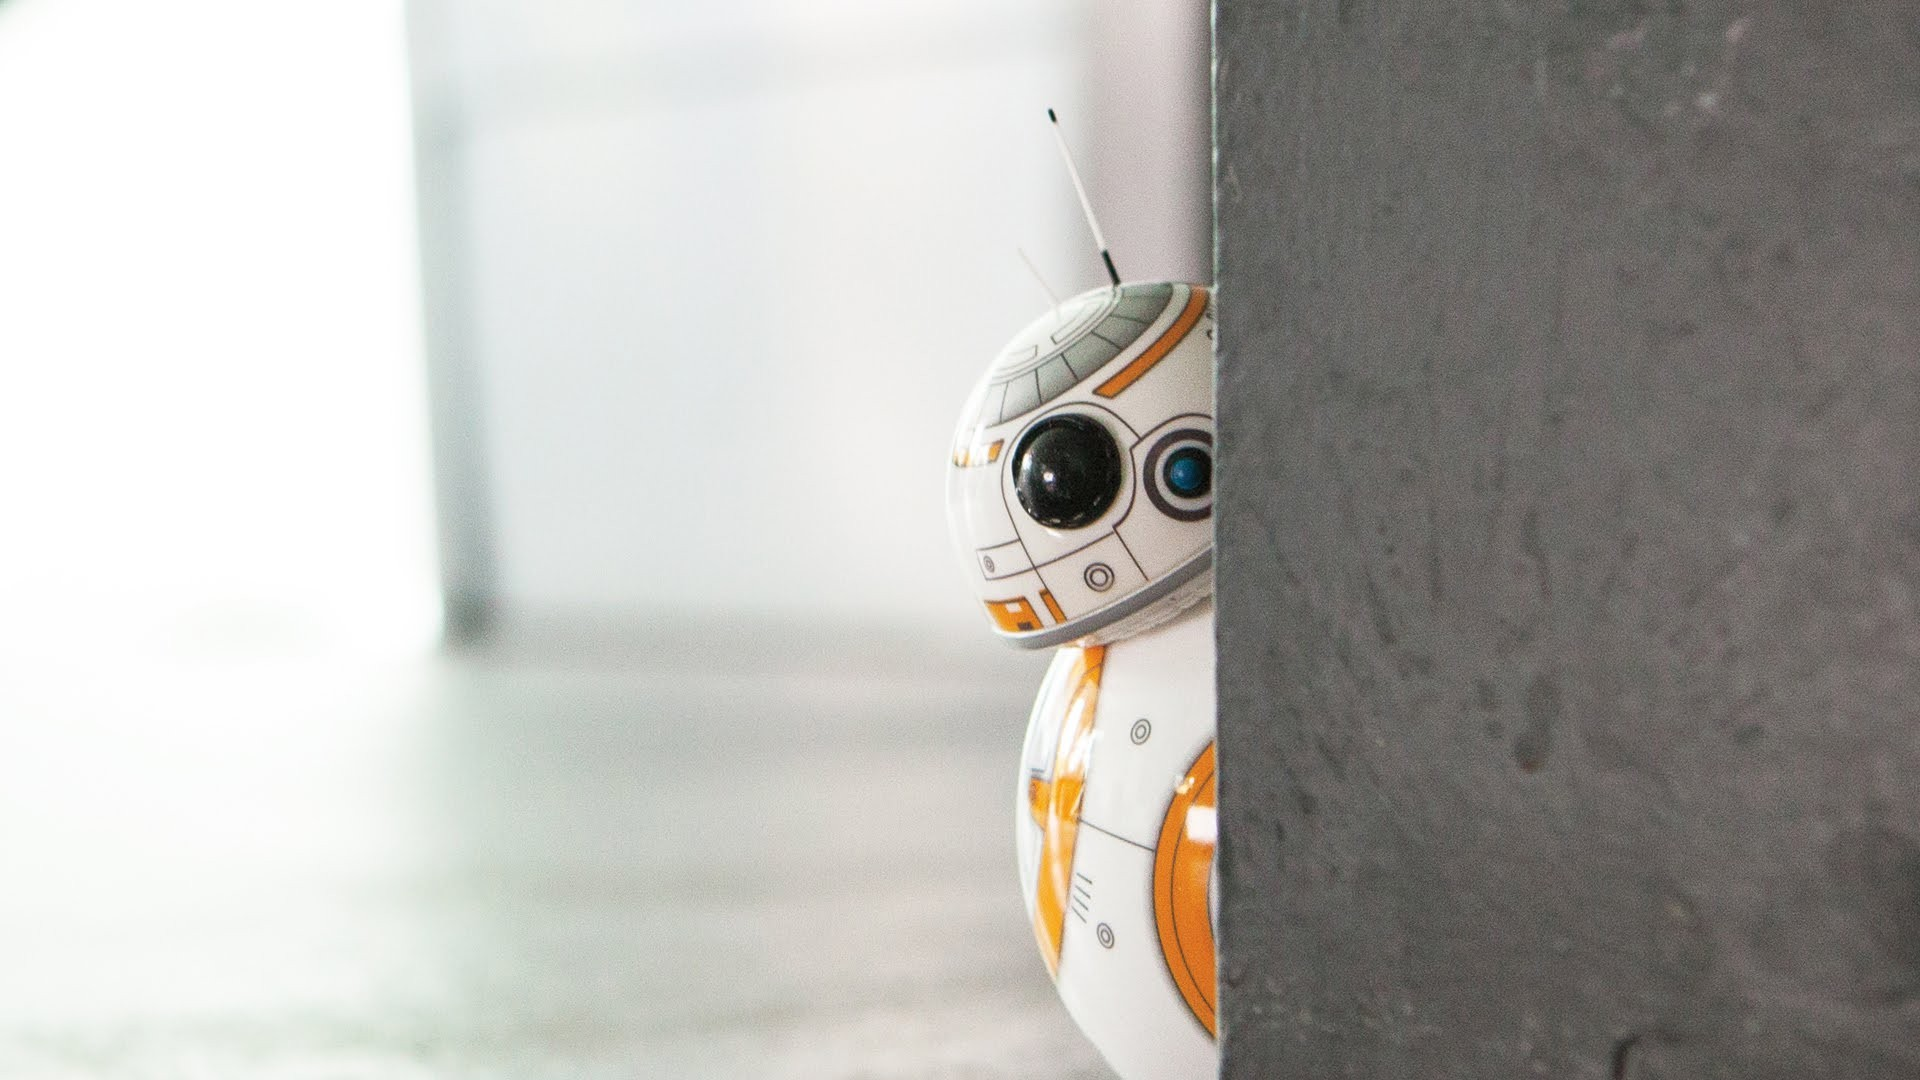 Hd 3d Droid Wallpapers Bb 8 Wallpaper 183 ① Download Free Stunning Backgrounds For